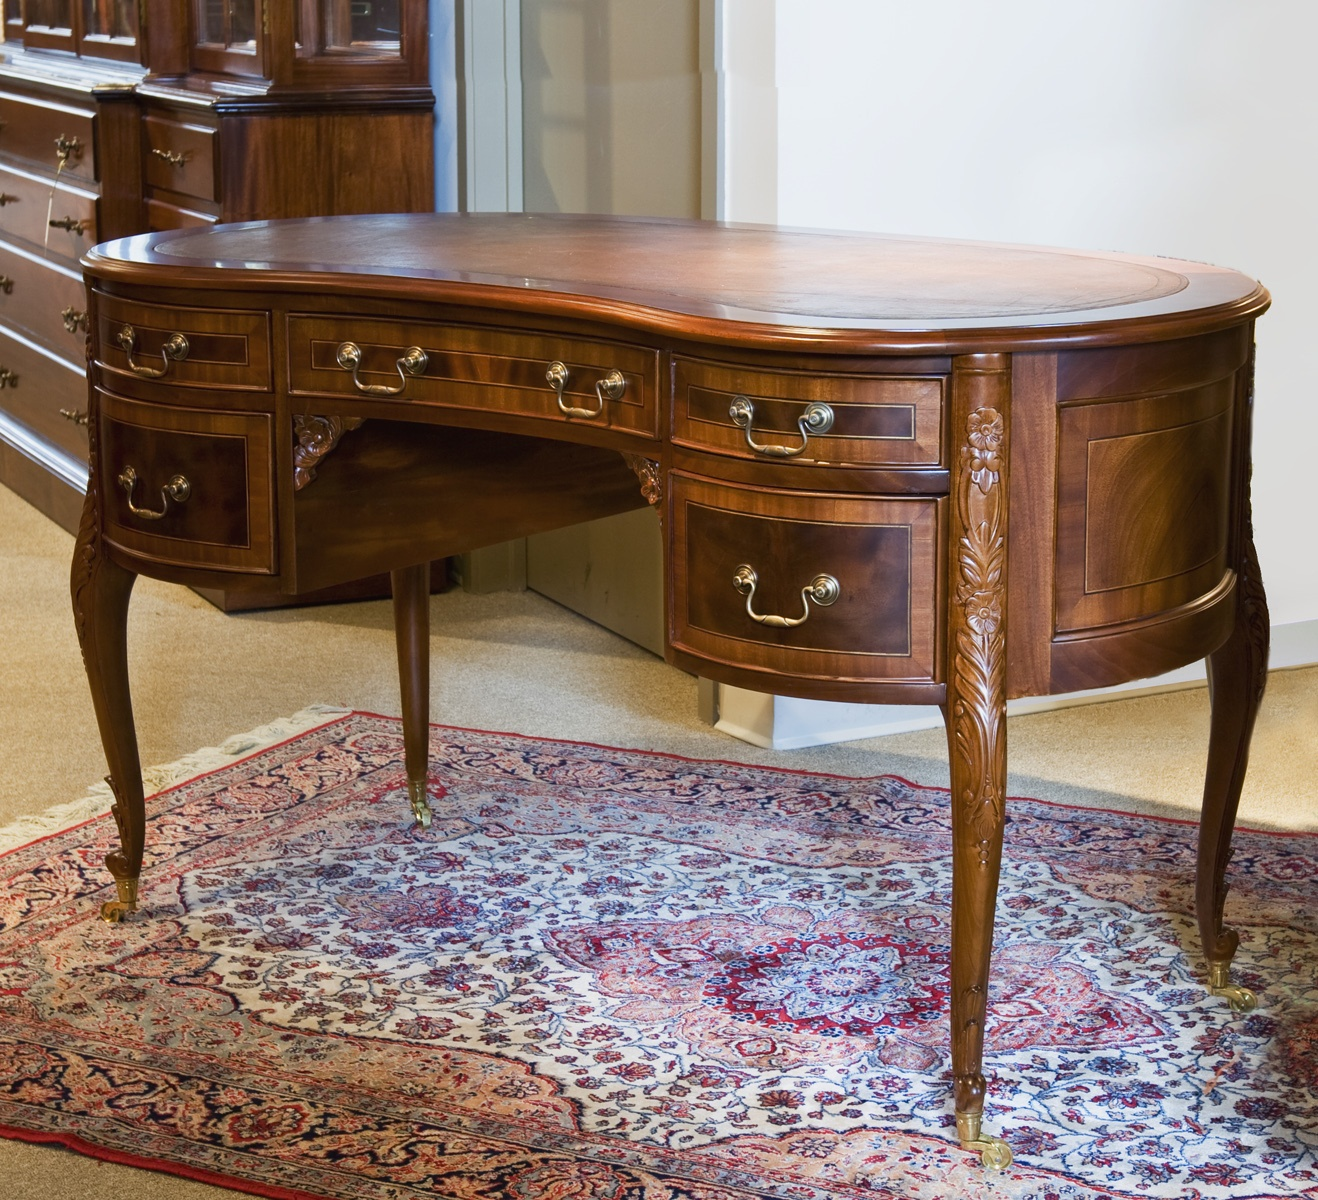 TA0018 - French Style Kidney Shape Desk